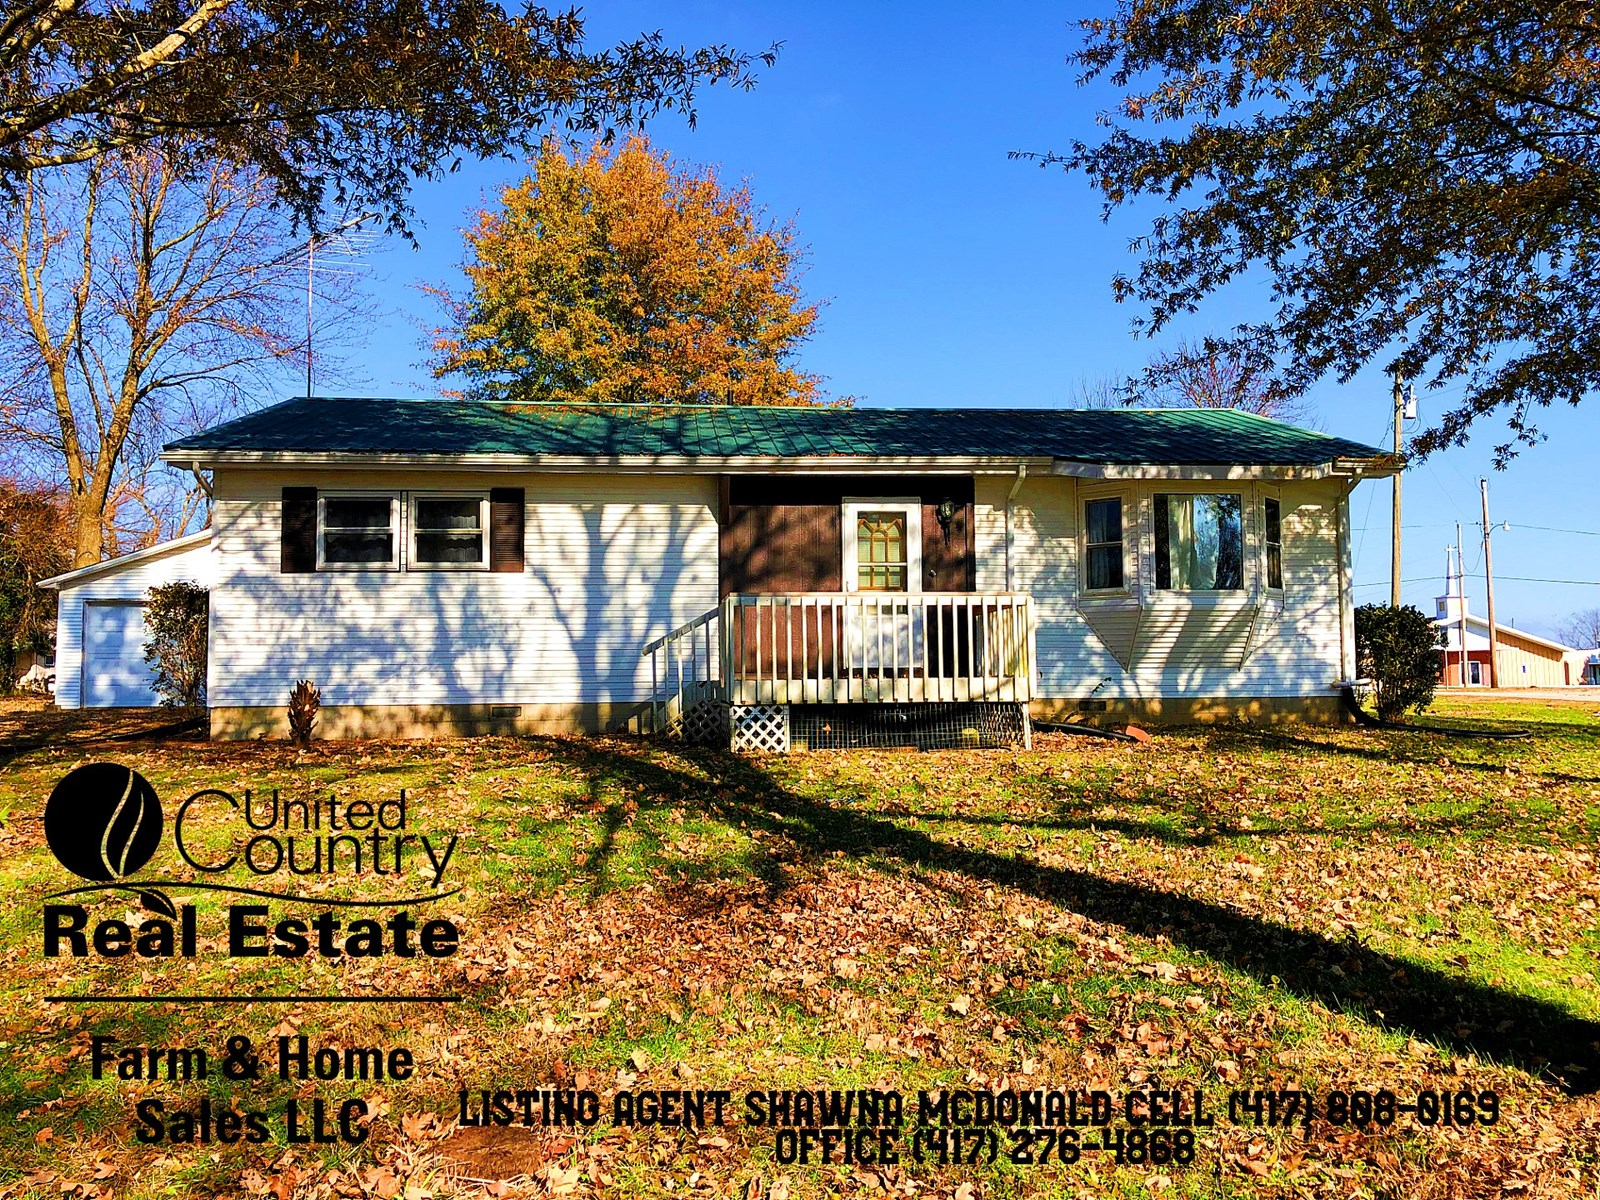 Affordable Home on .5 Acre in Arcola, MO near Stockton Lake